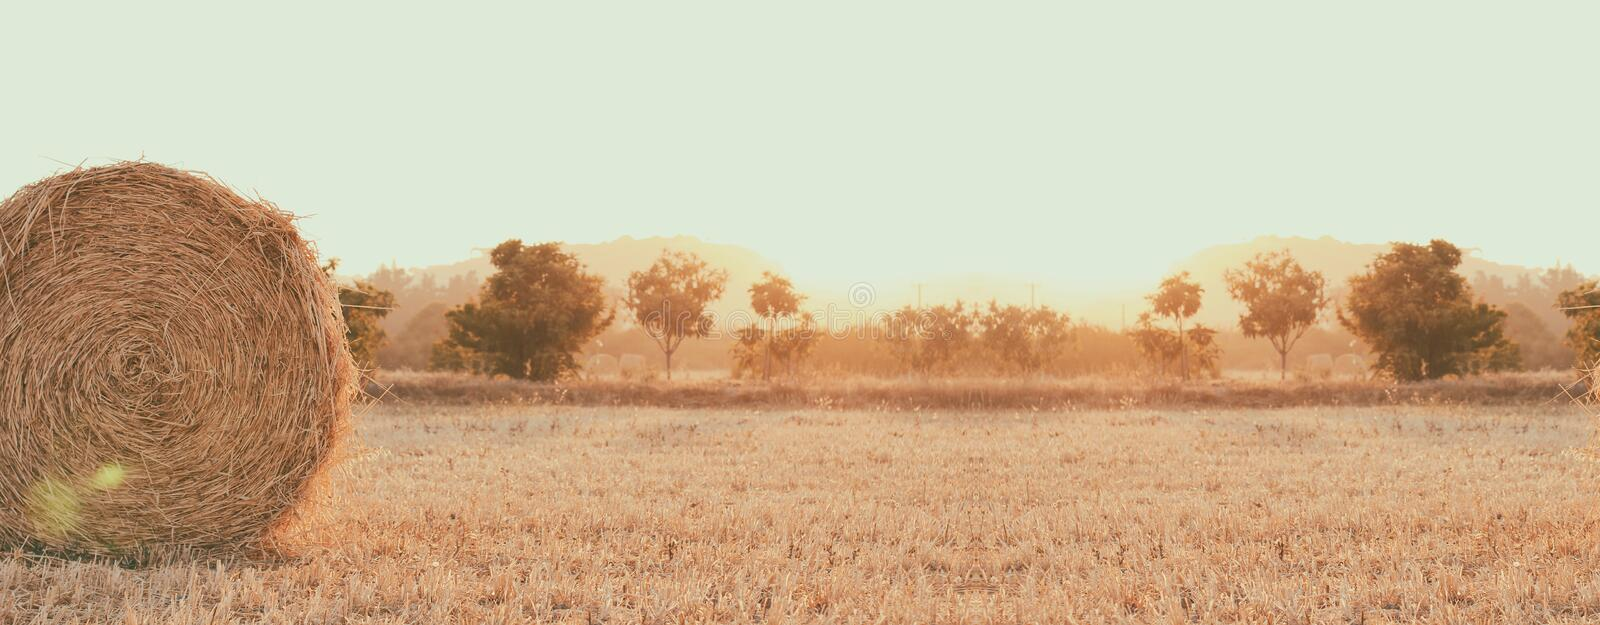 Haystack on the field. Sunset time. Harvest season. Long banner photo. Header format. Calm place. Soft warm sun light royalty free stock image